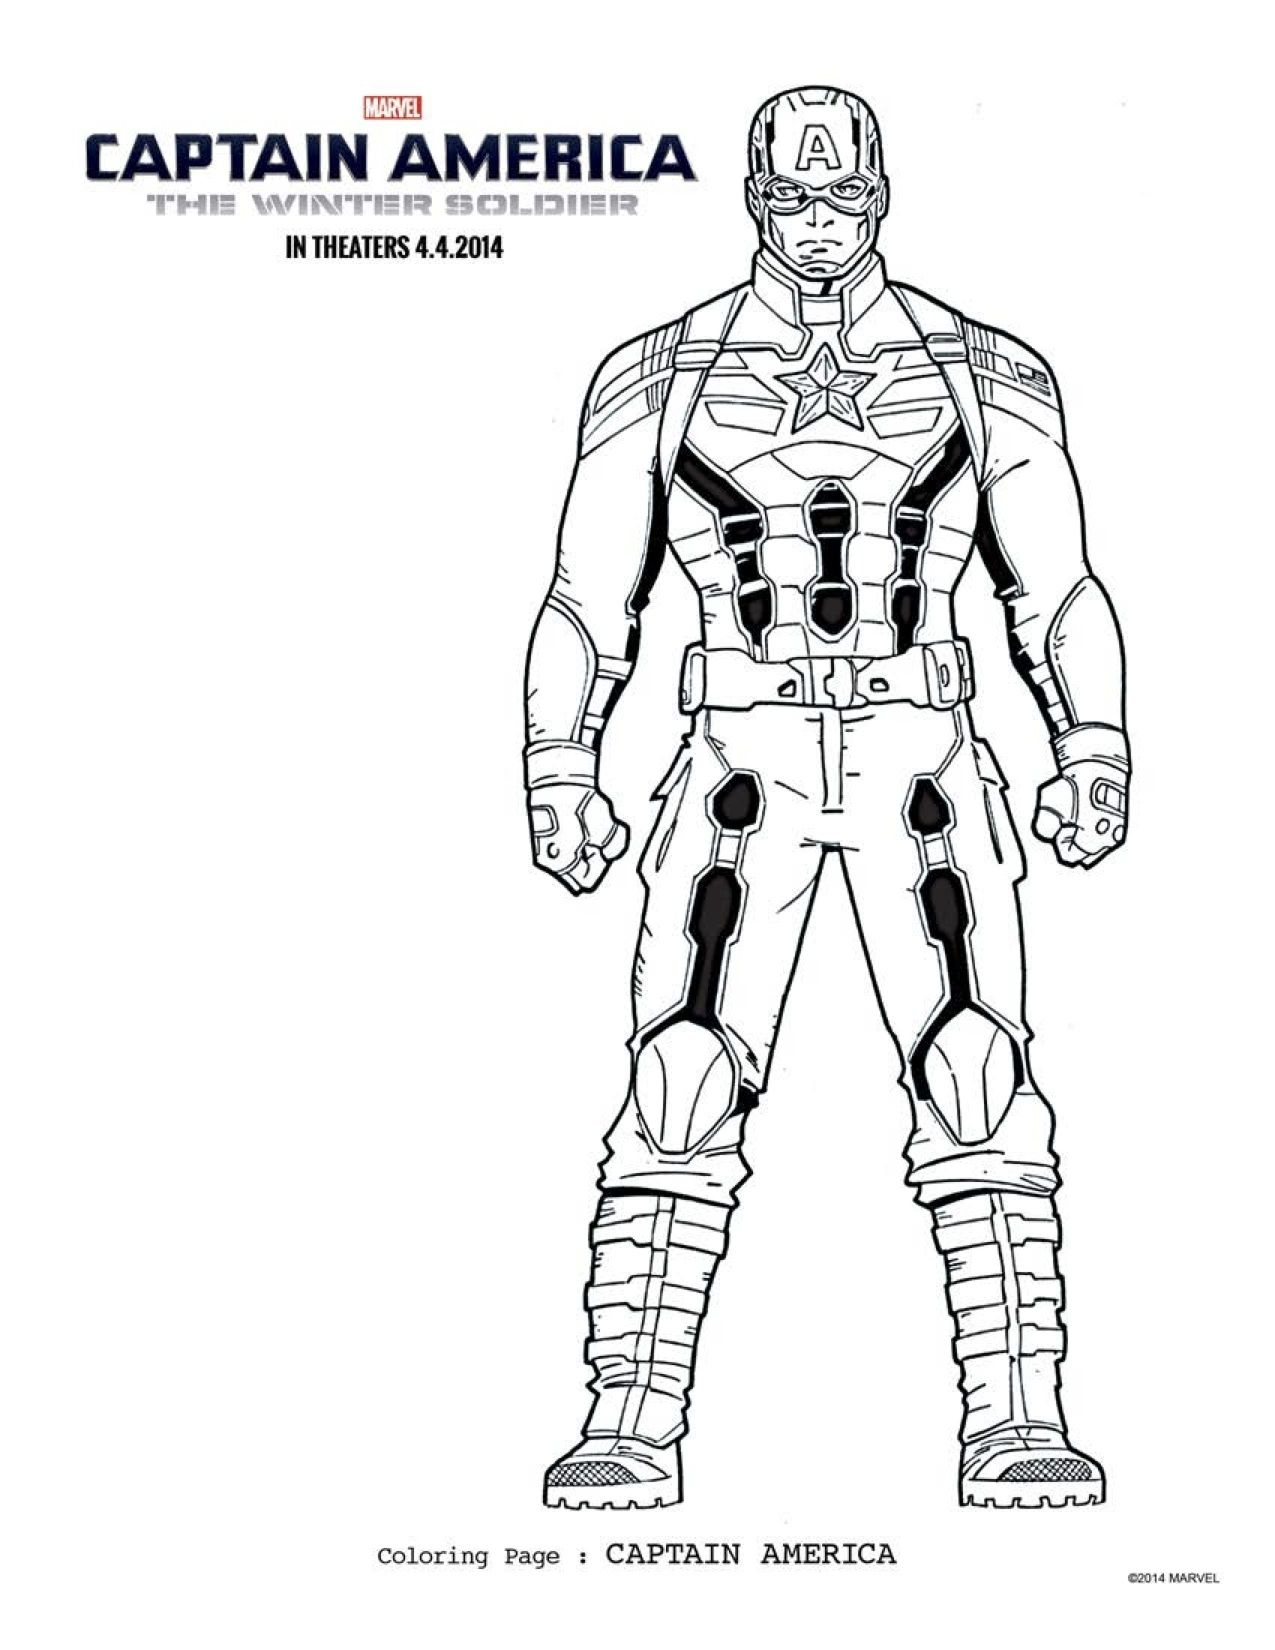 FREE Captain America Coloring Pages: Download Printables